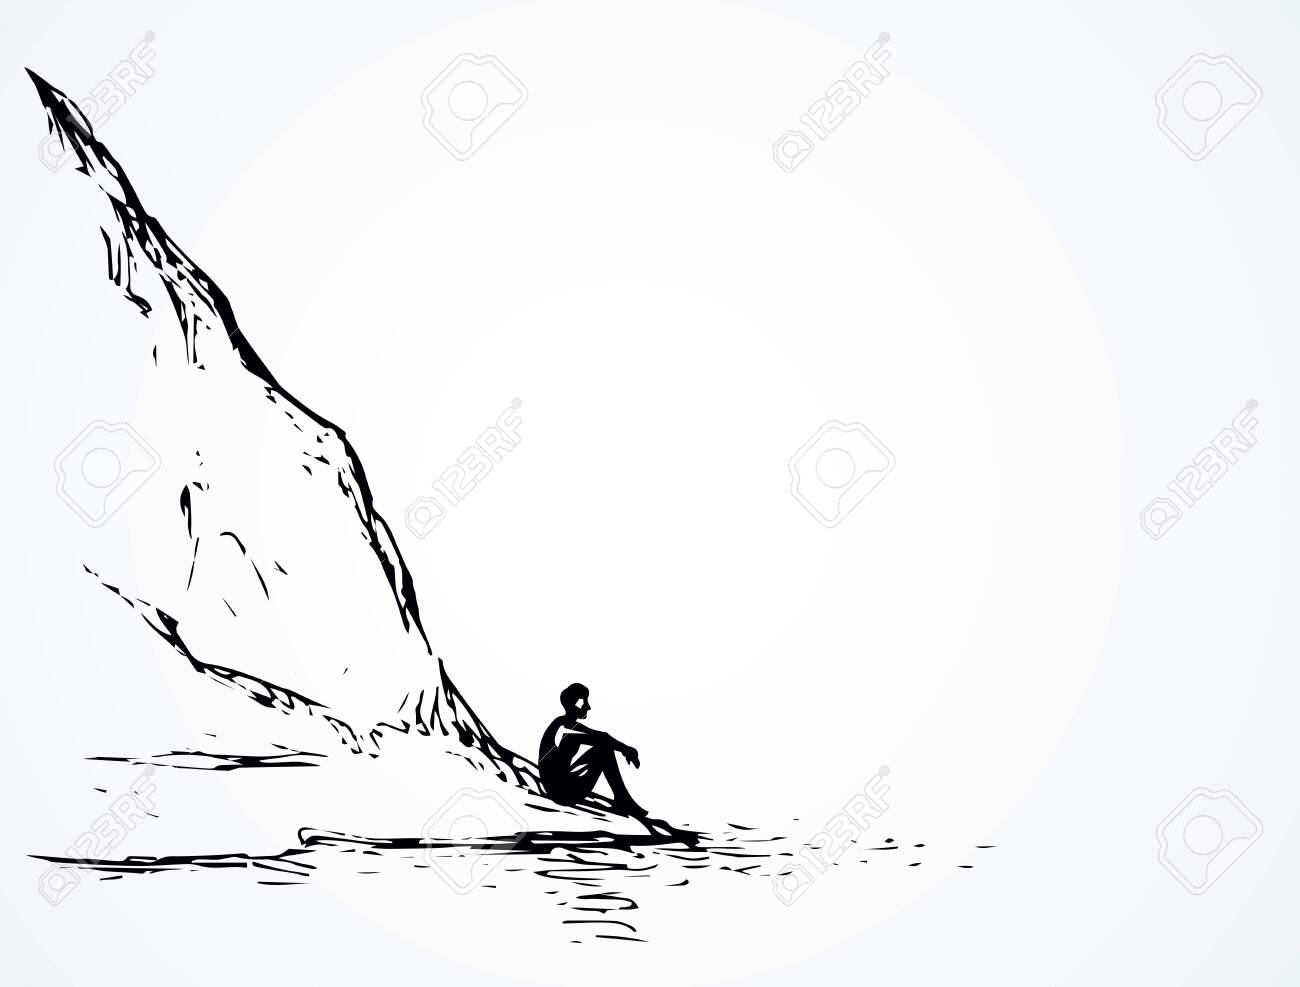 Cliff calm remote scene on high riverbank. Line black ink hand drawn sad lone young girl on space for text on white sky. Wild spring Alpine waterfront pond peace view picture in art vintage doodle style - 155205444